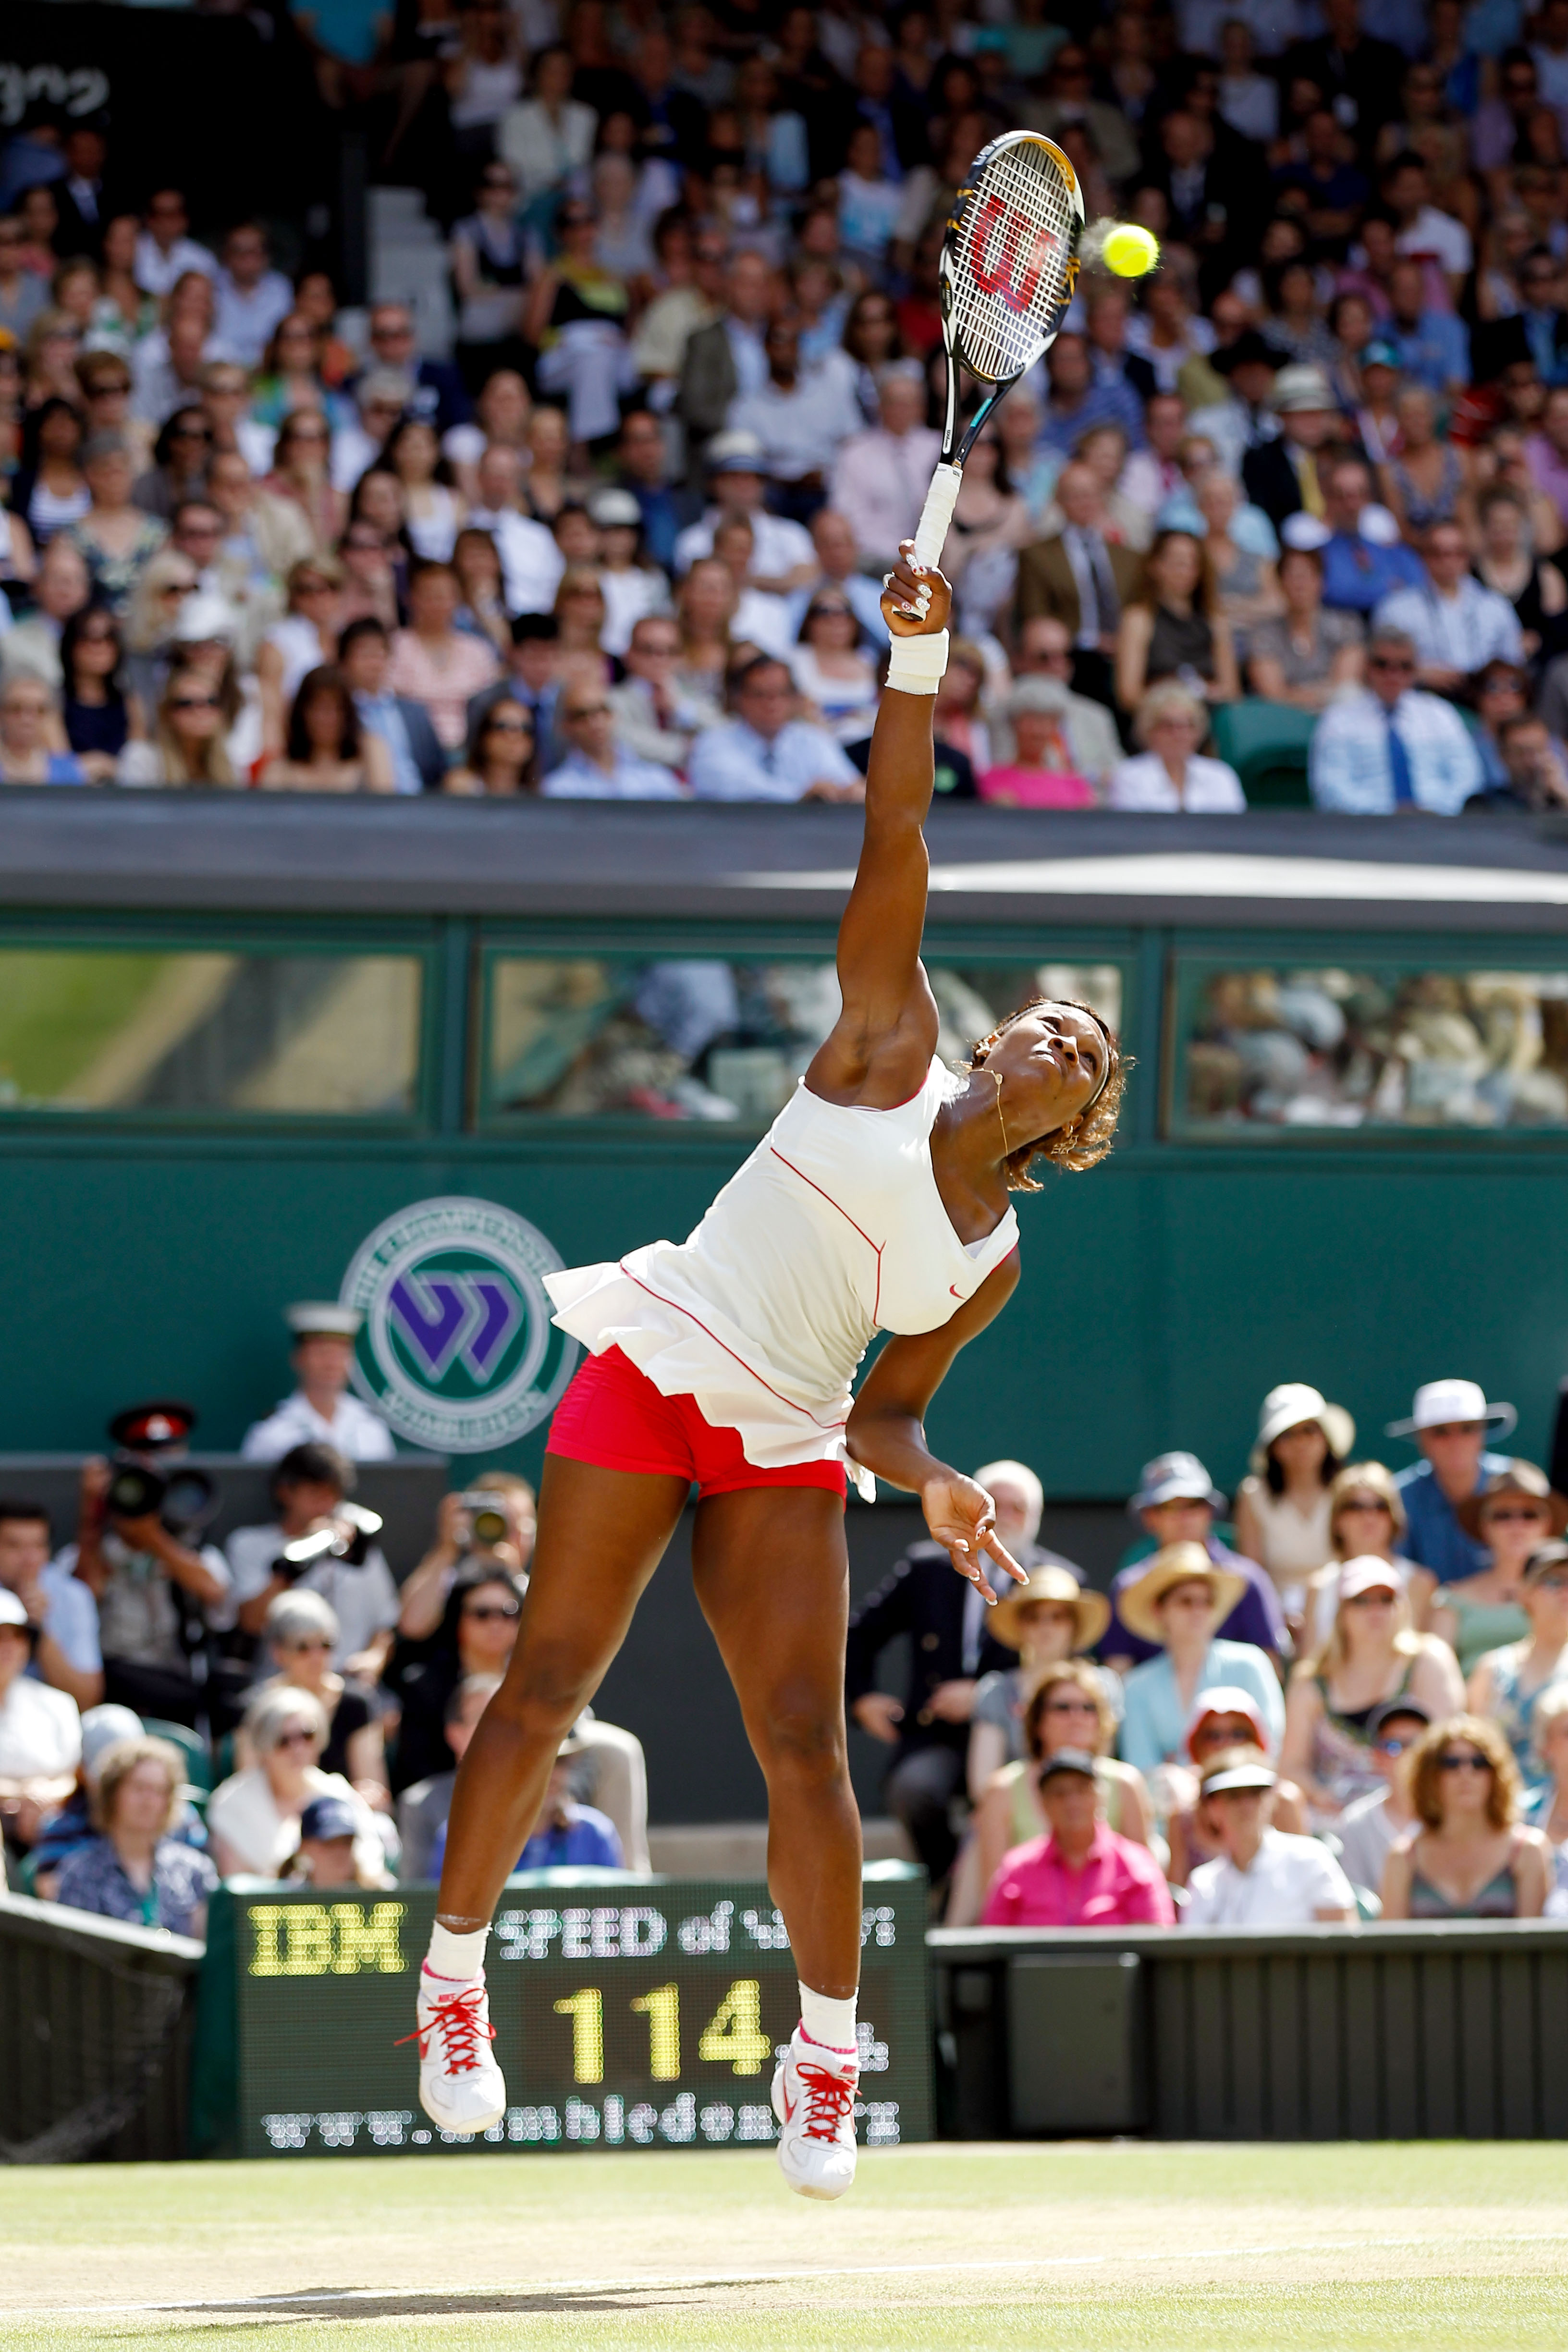 LONDON, ENGLAND - JULY 03:  Serena Williams of USA serves during the Ladies Singles Final Match against Vera Zvonareva of Russia on Day Twelve of the Wimbledon Lawn Tennis Championships at the All England Lawn Tennis and Croquet Club on July 3, 2010 in Lo